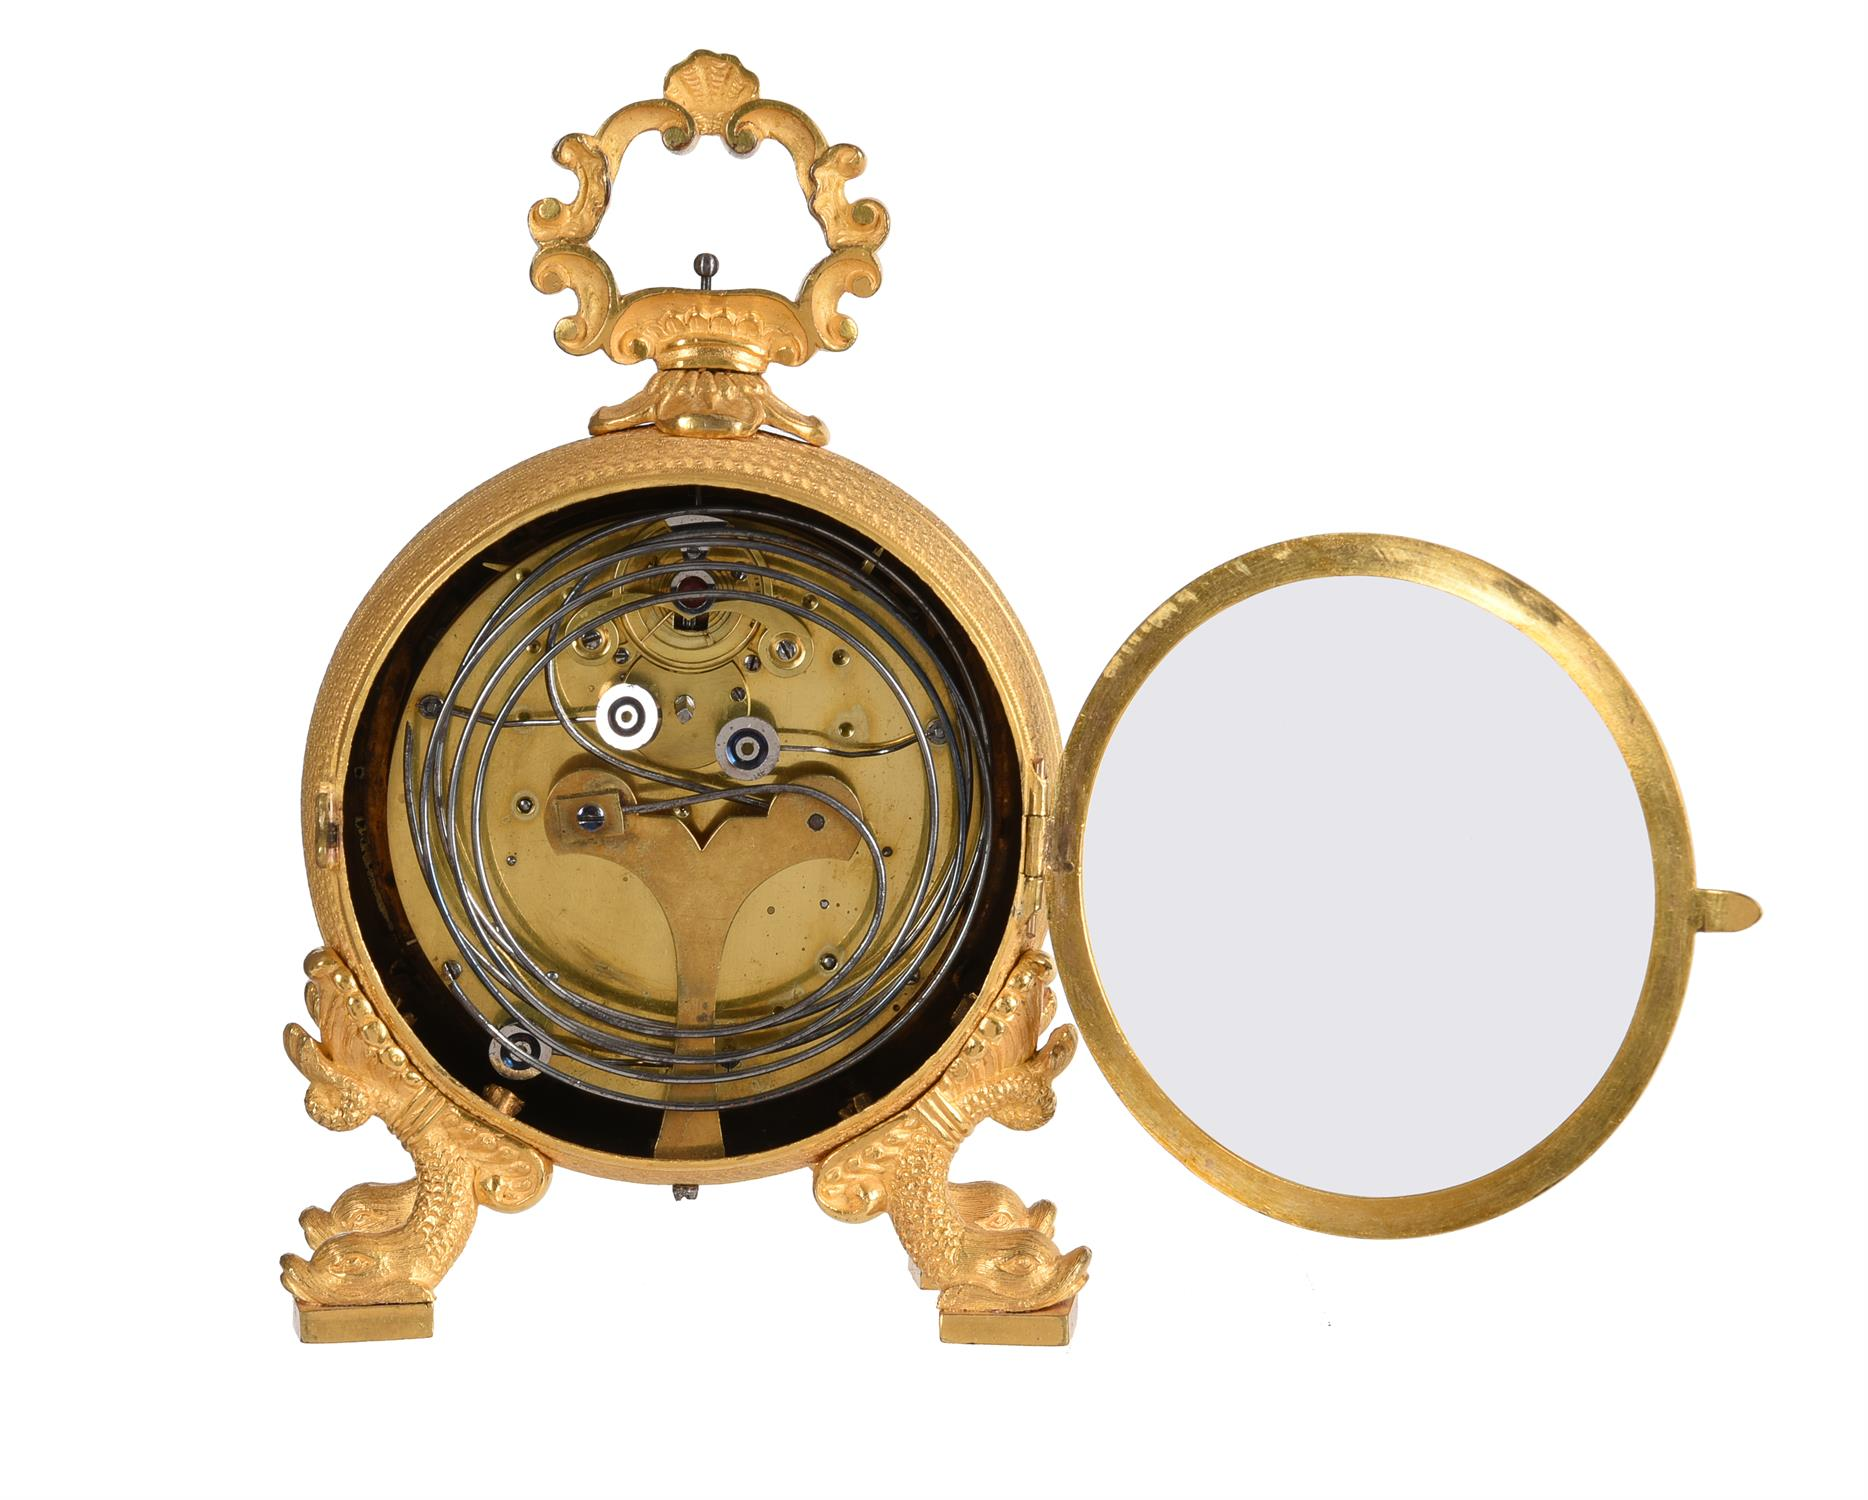 An Austrian ormolu cased grande-sonnerie striking 'Pendule d'Officier' with alarm - Image 2 of 2